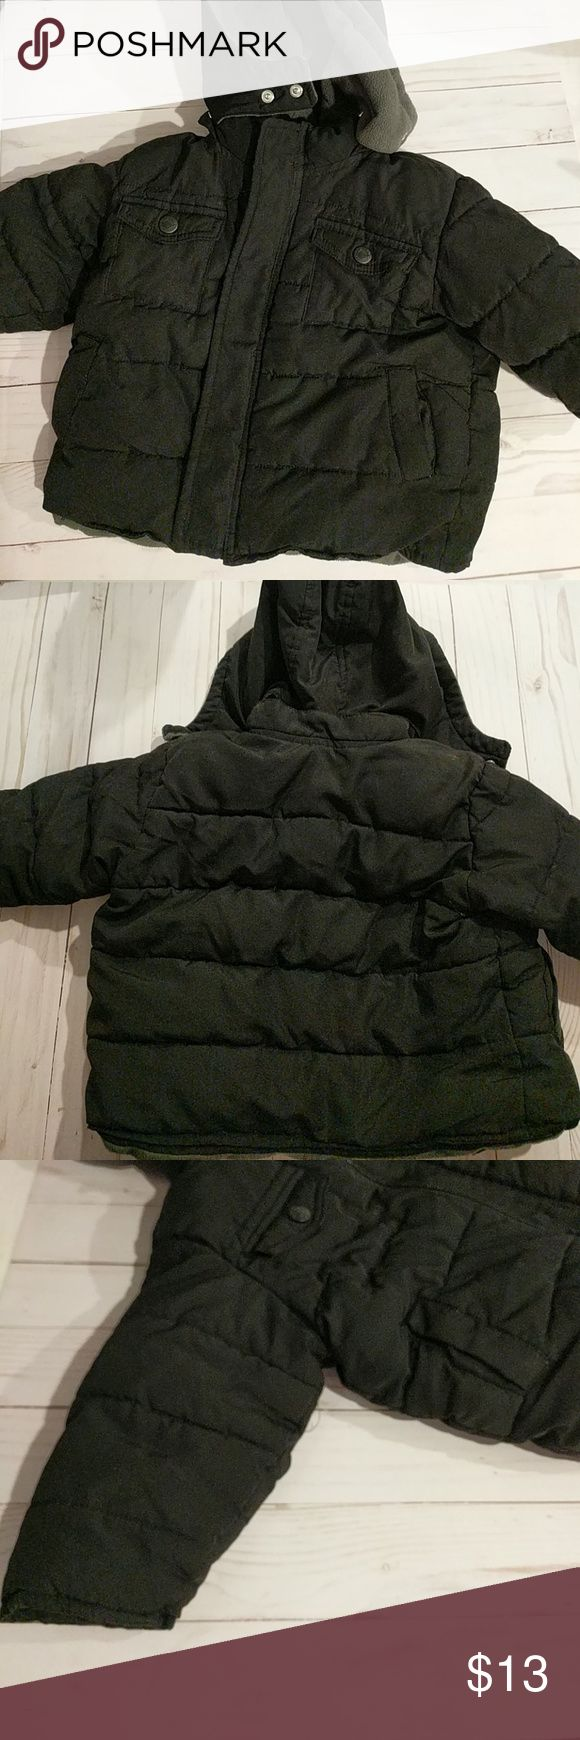 Old Navy Puffy Coat Old Navy Puffy Coat 12-18 mo GUC  N Old Navy Jackets & Coats Puffers